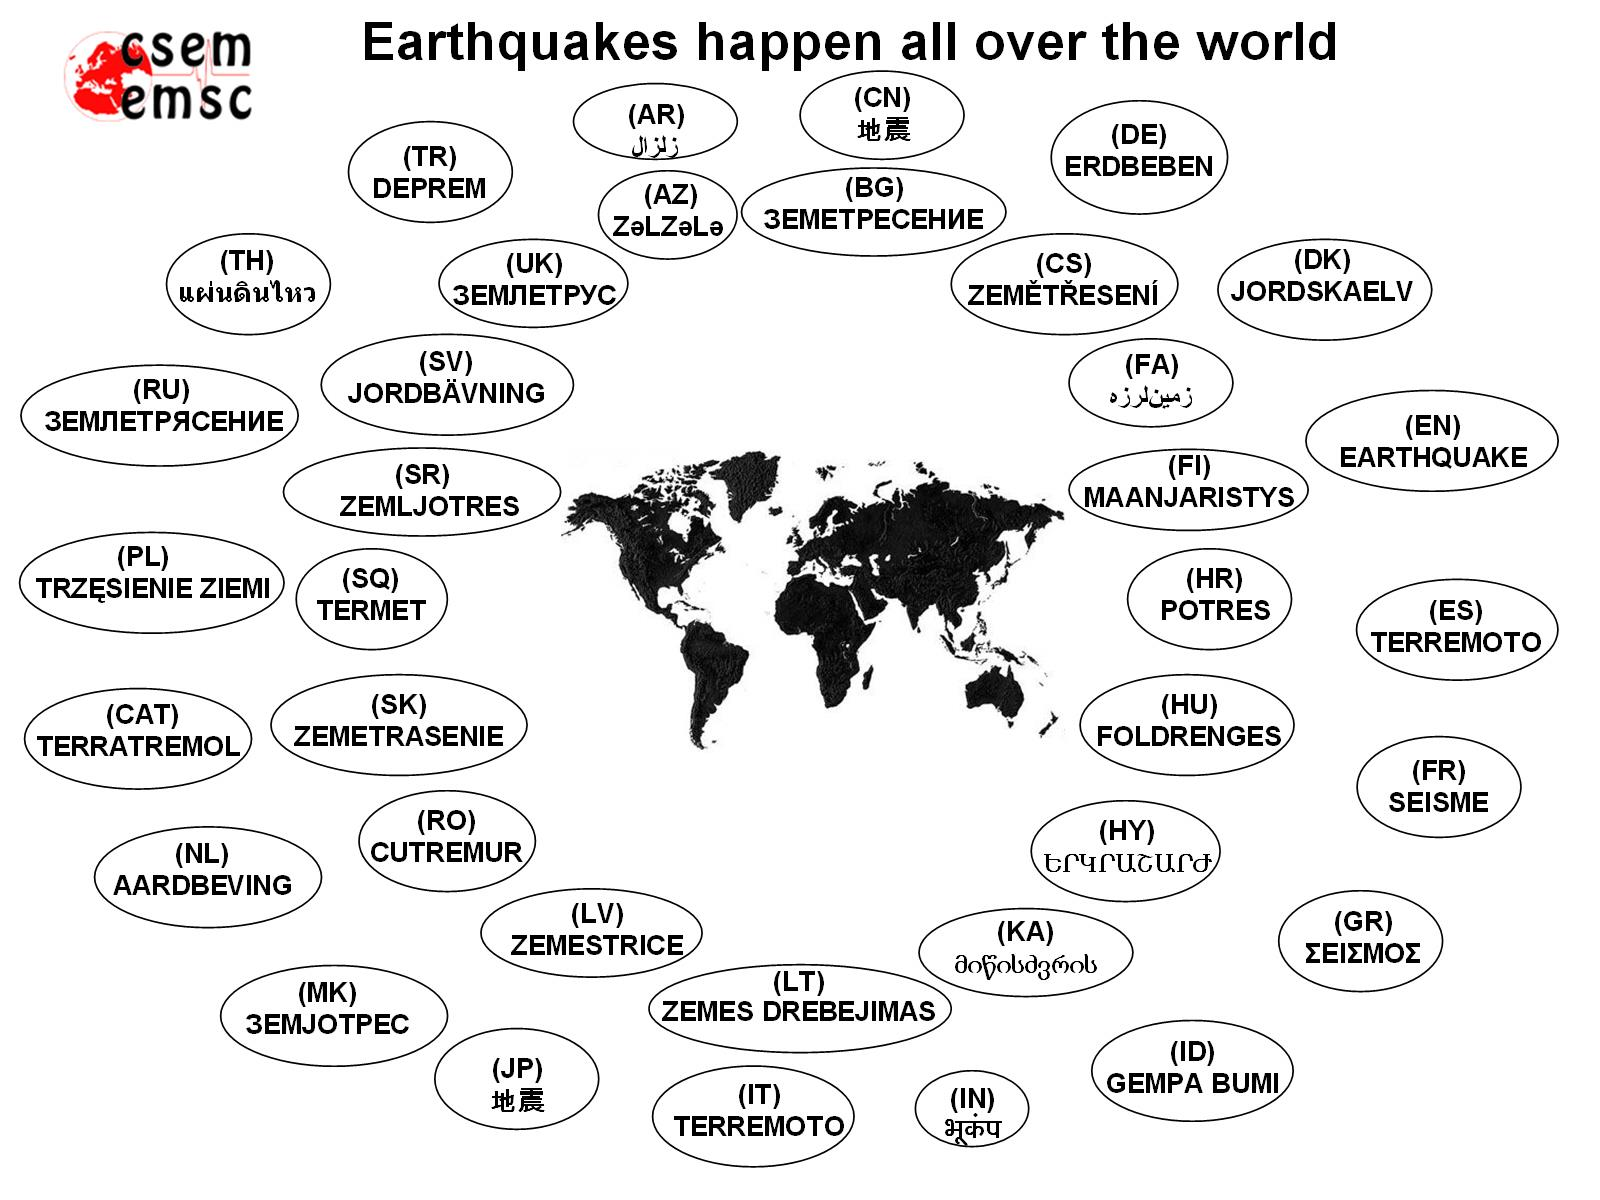 Earthquakes Happen All Over The World - All languages in the world